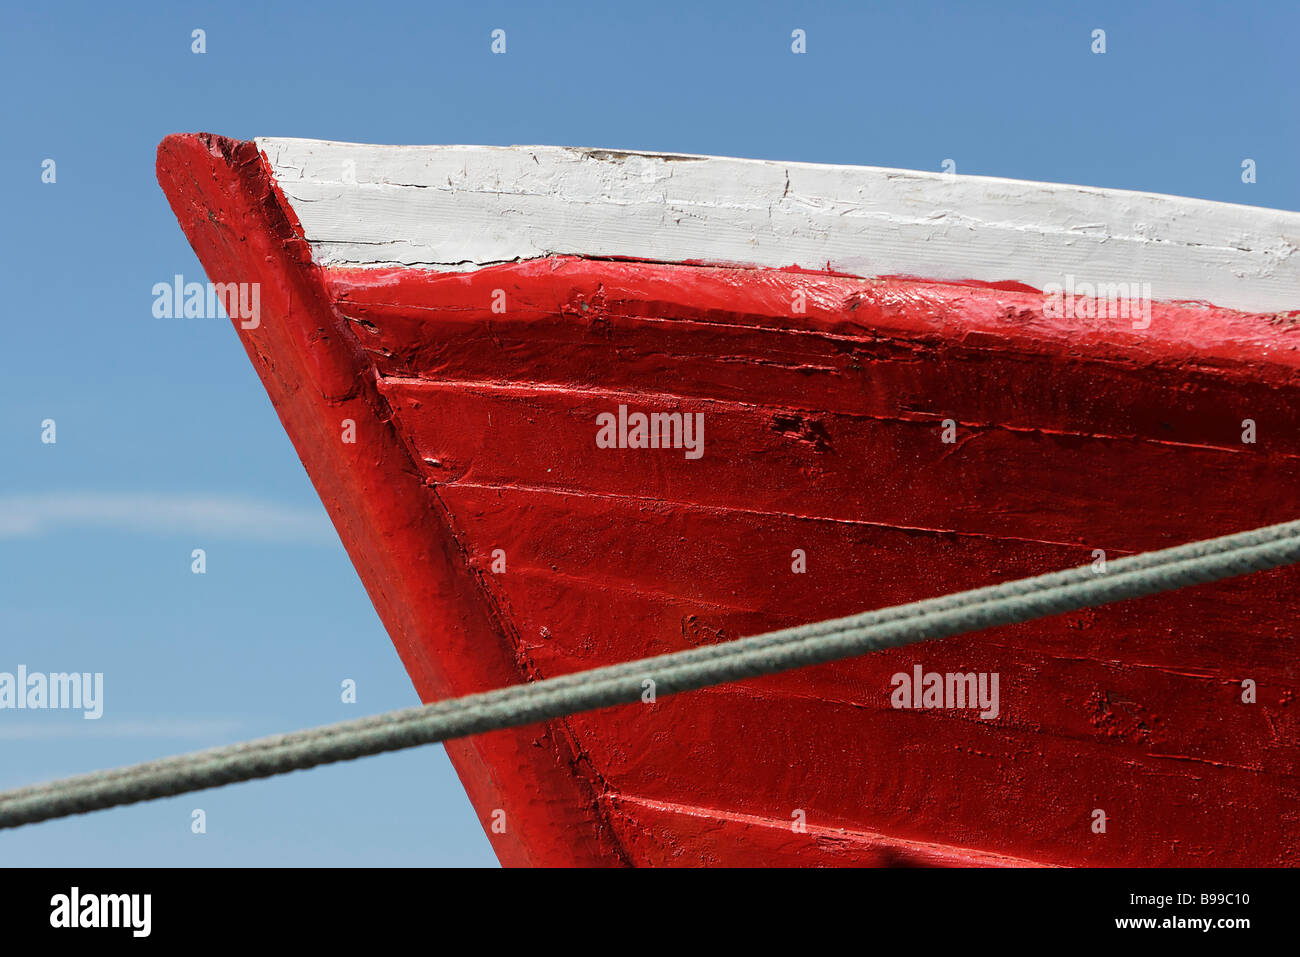 Proue de bateau, extreme close-up Photo Stock